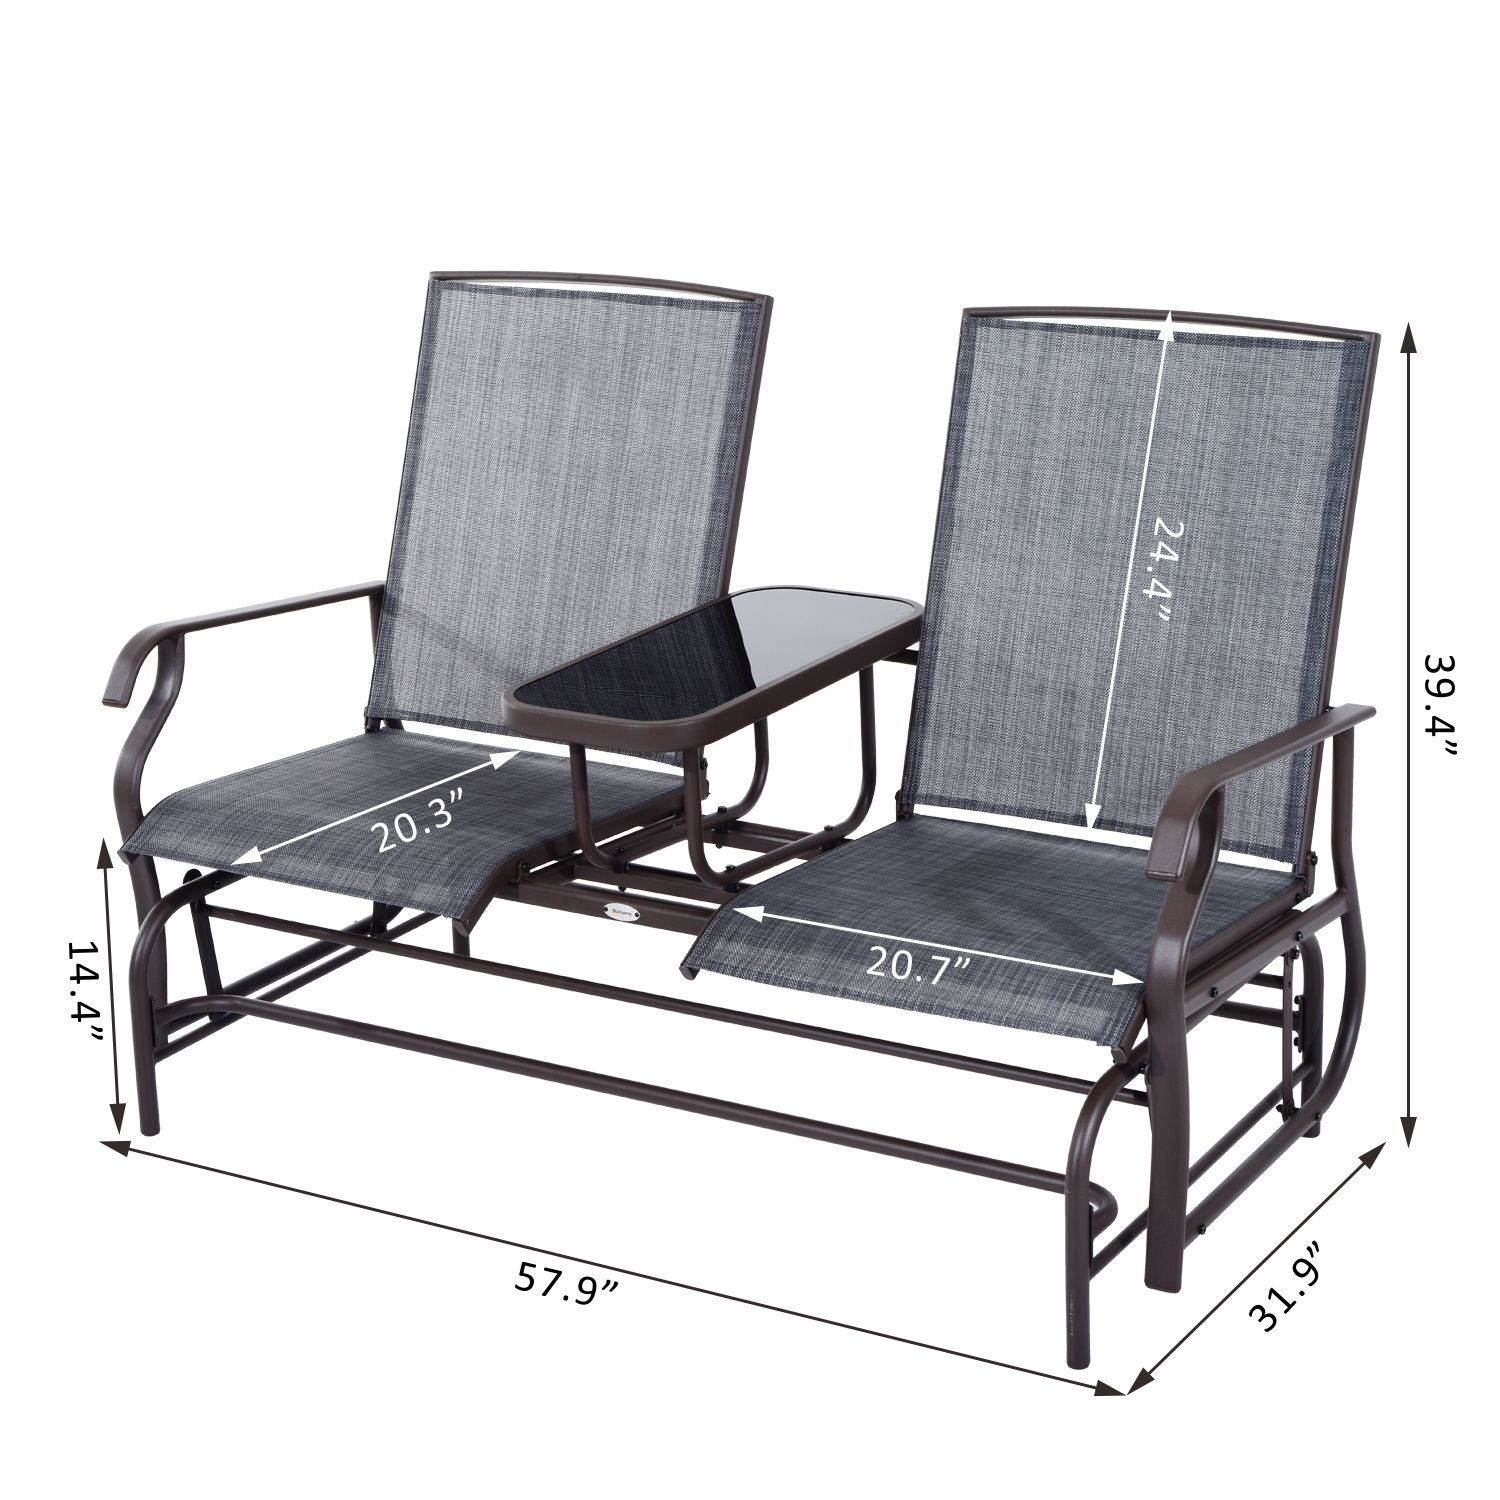 rocking chair for two casters chairs on carpet uk patio glider bench loveseat 2 person rocker